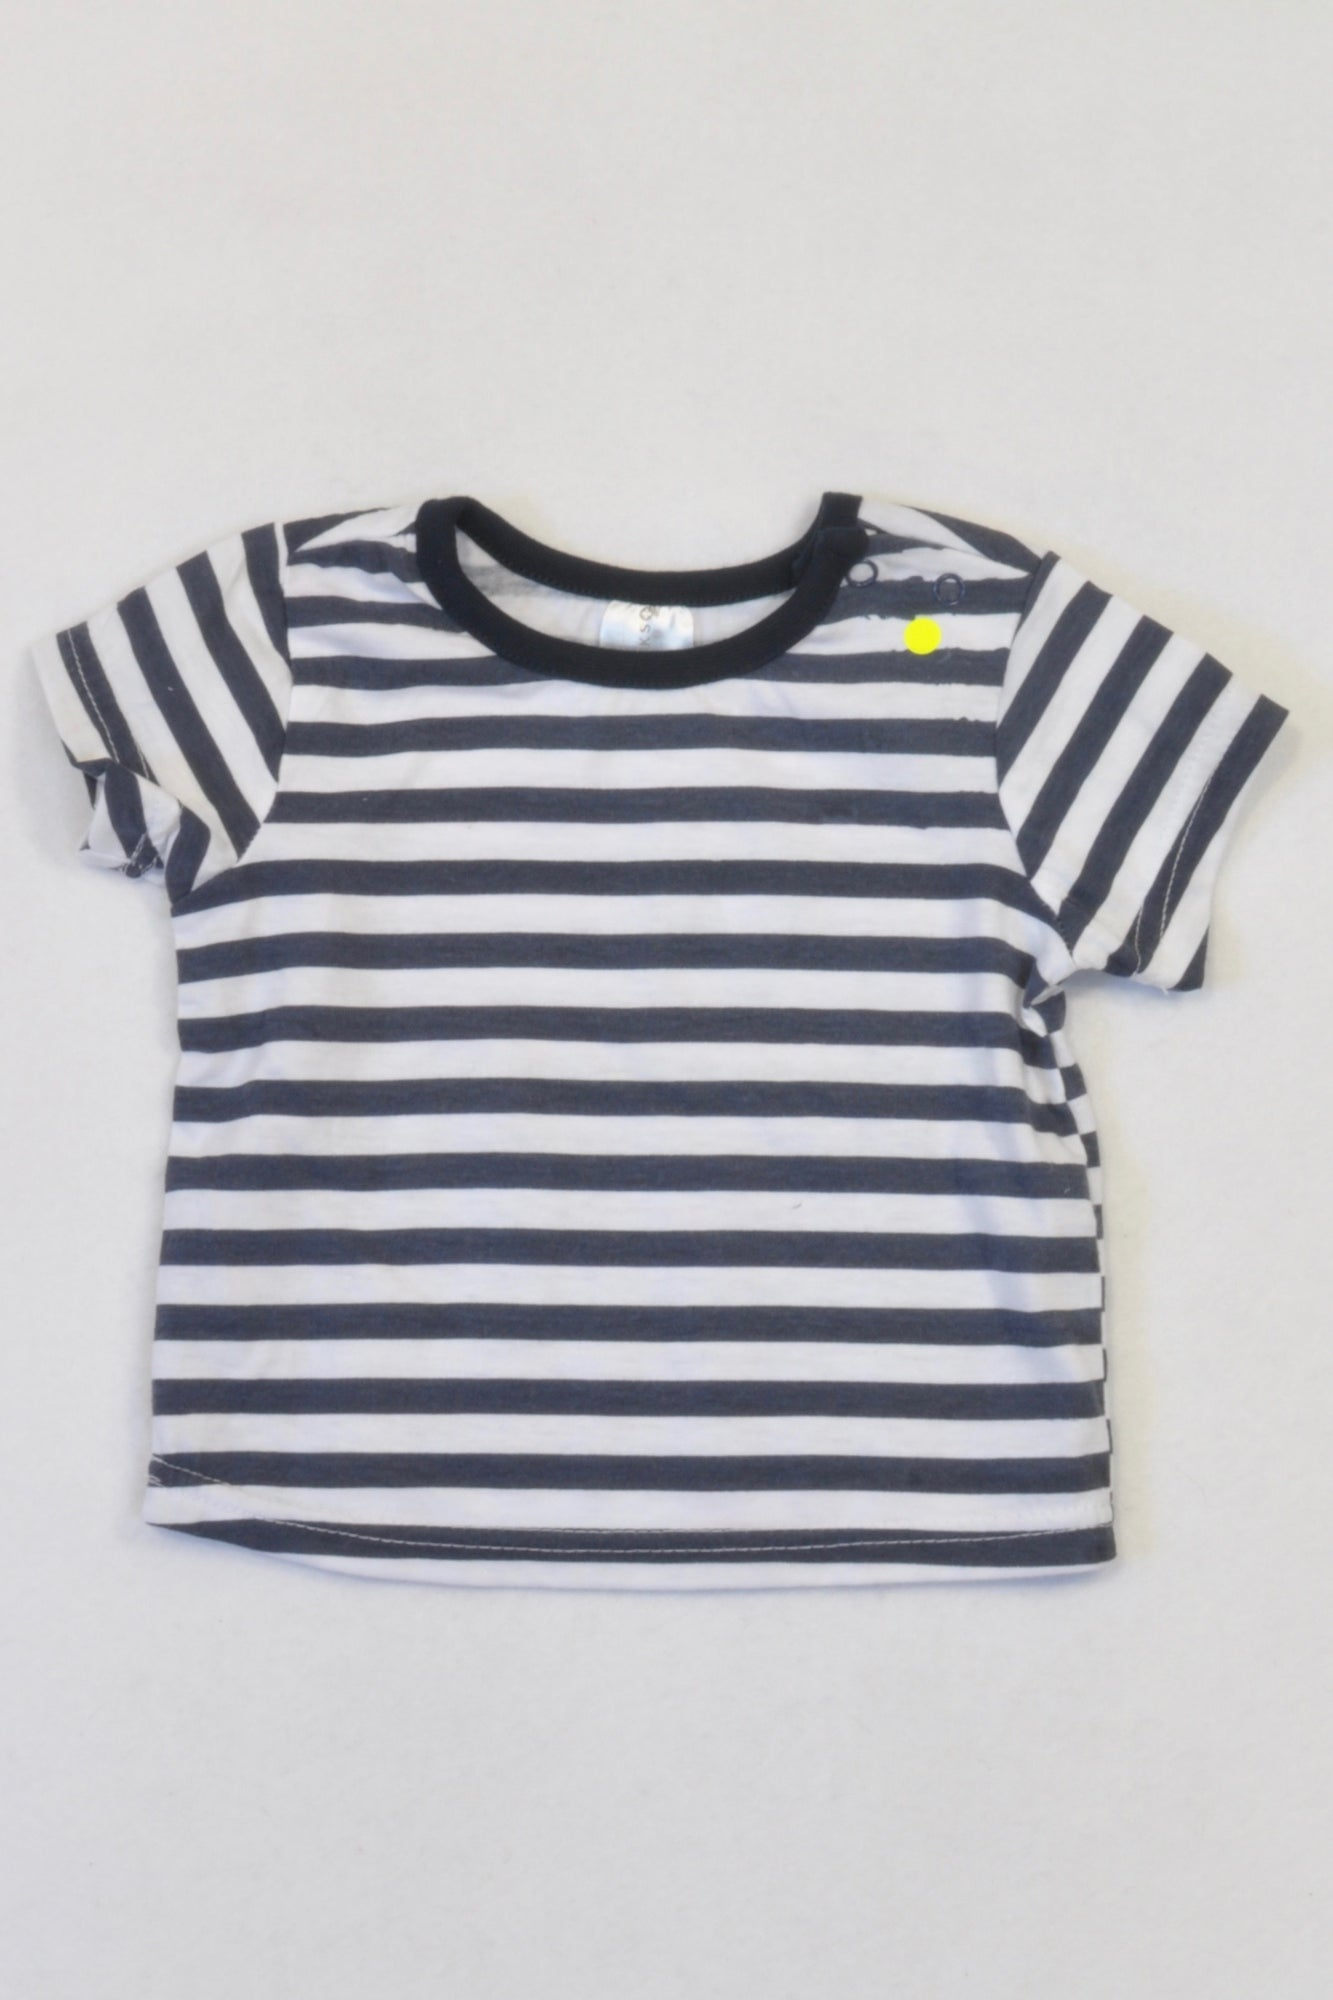 Clicks Navy & White Stripe T-shirt Boys 0-3 months